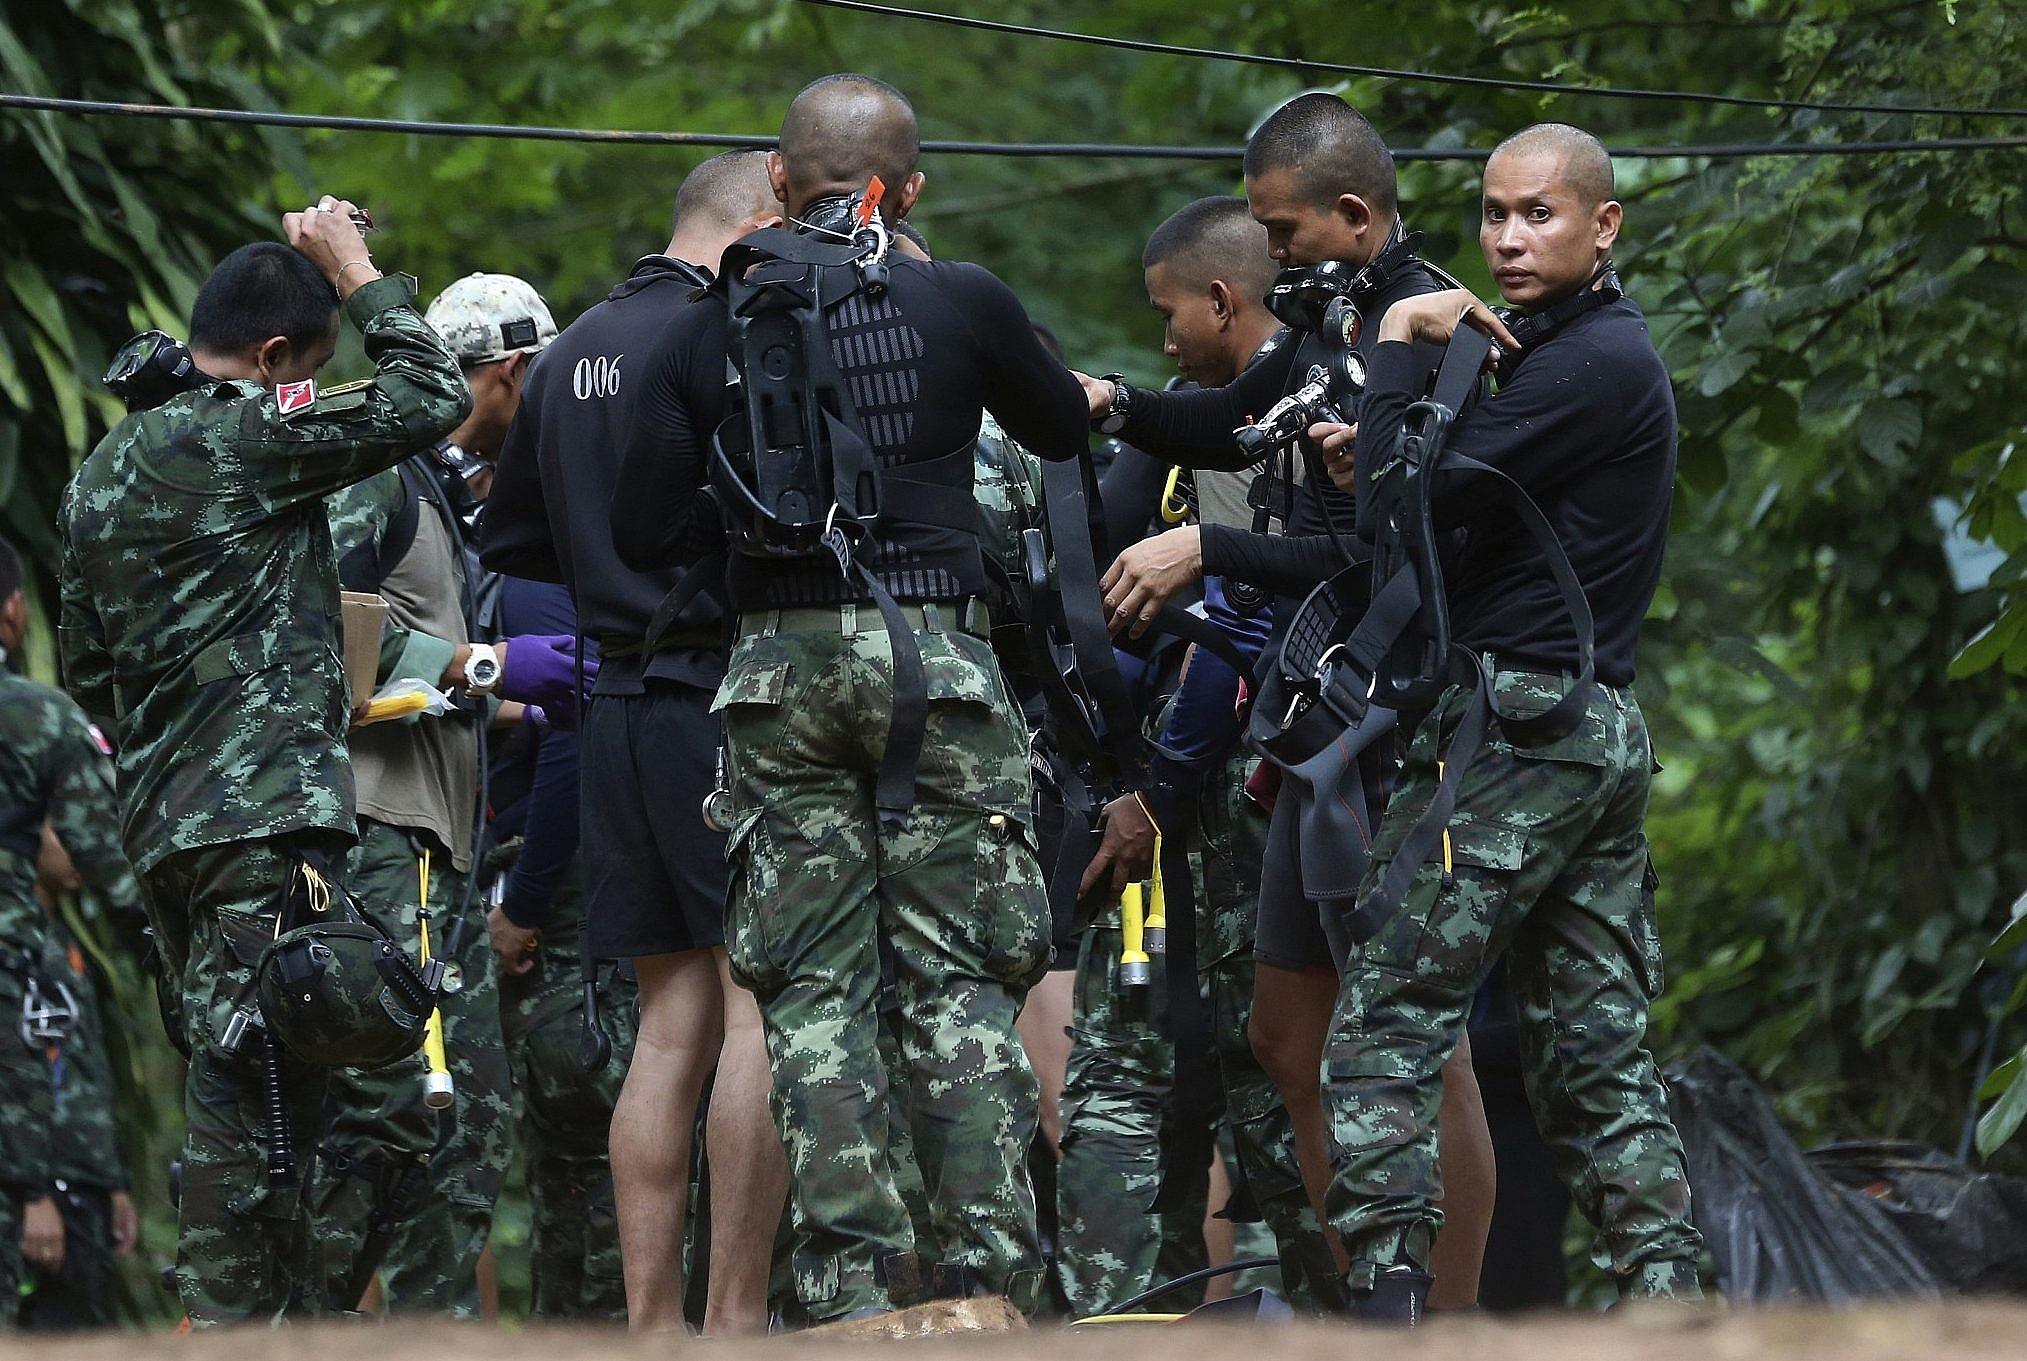 Former Thai Navy SEAL Dies Trying to Help Trapped Boys